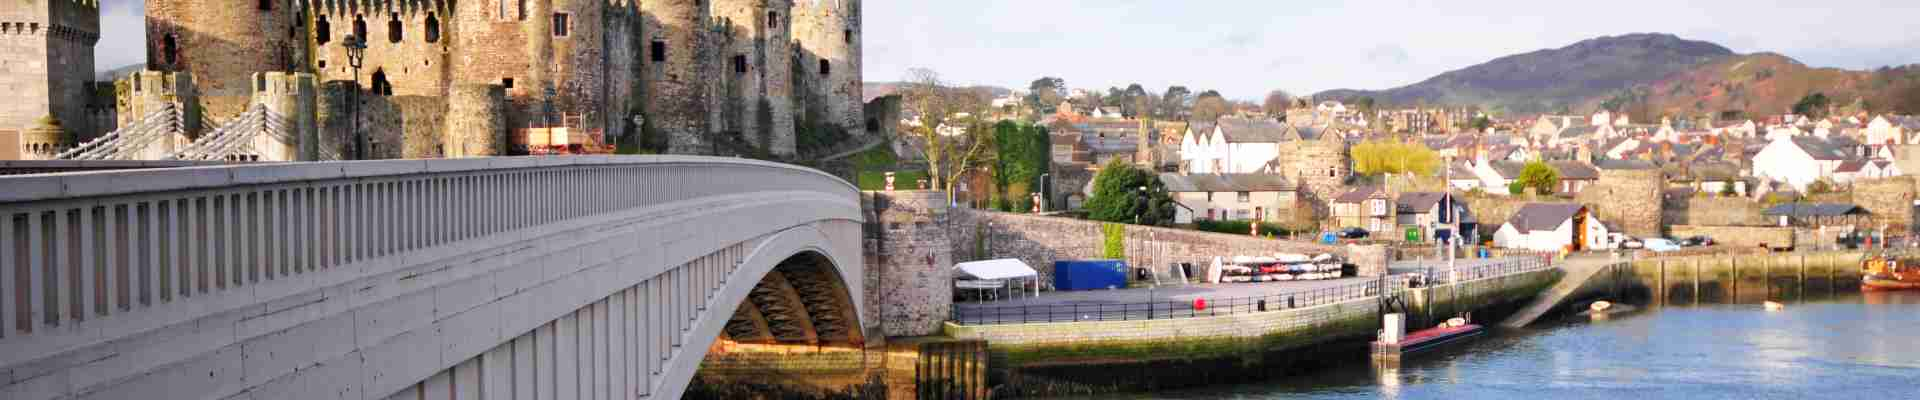 Conwy Feast is a celebration of food, music and arts set in the Medieval riverside town of Conwy in